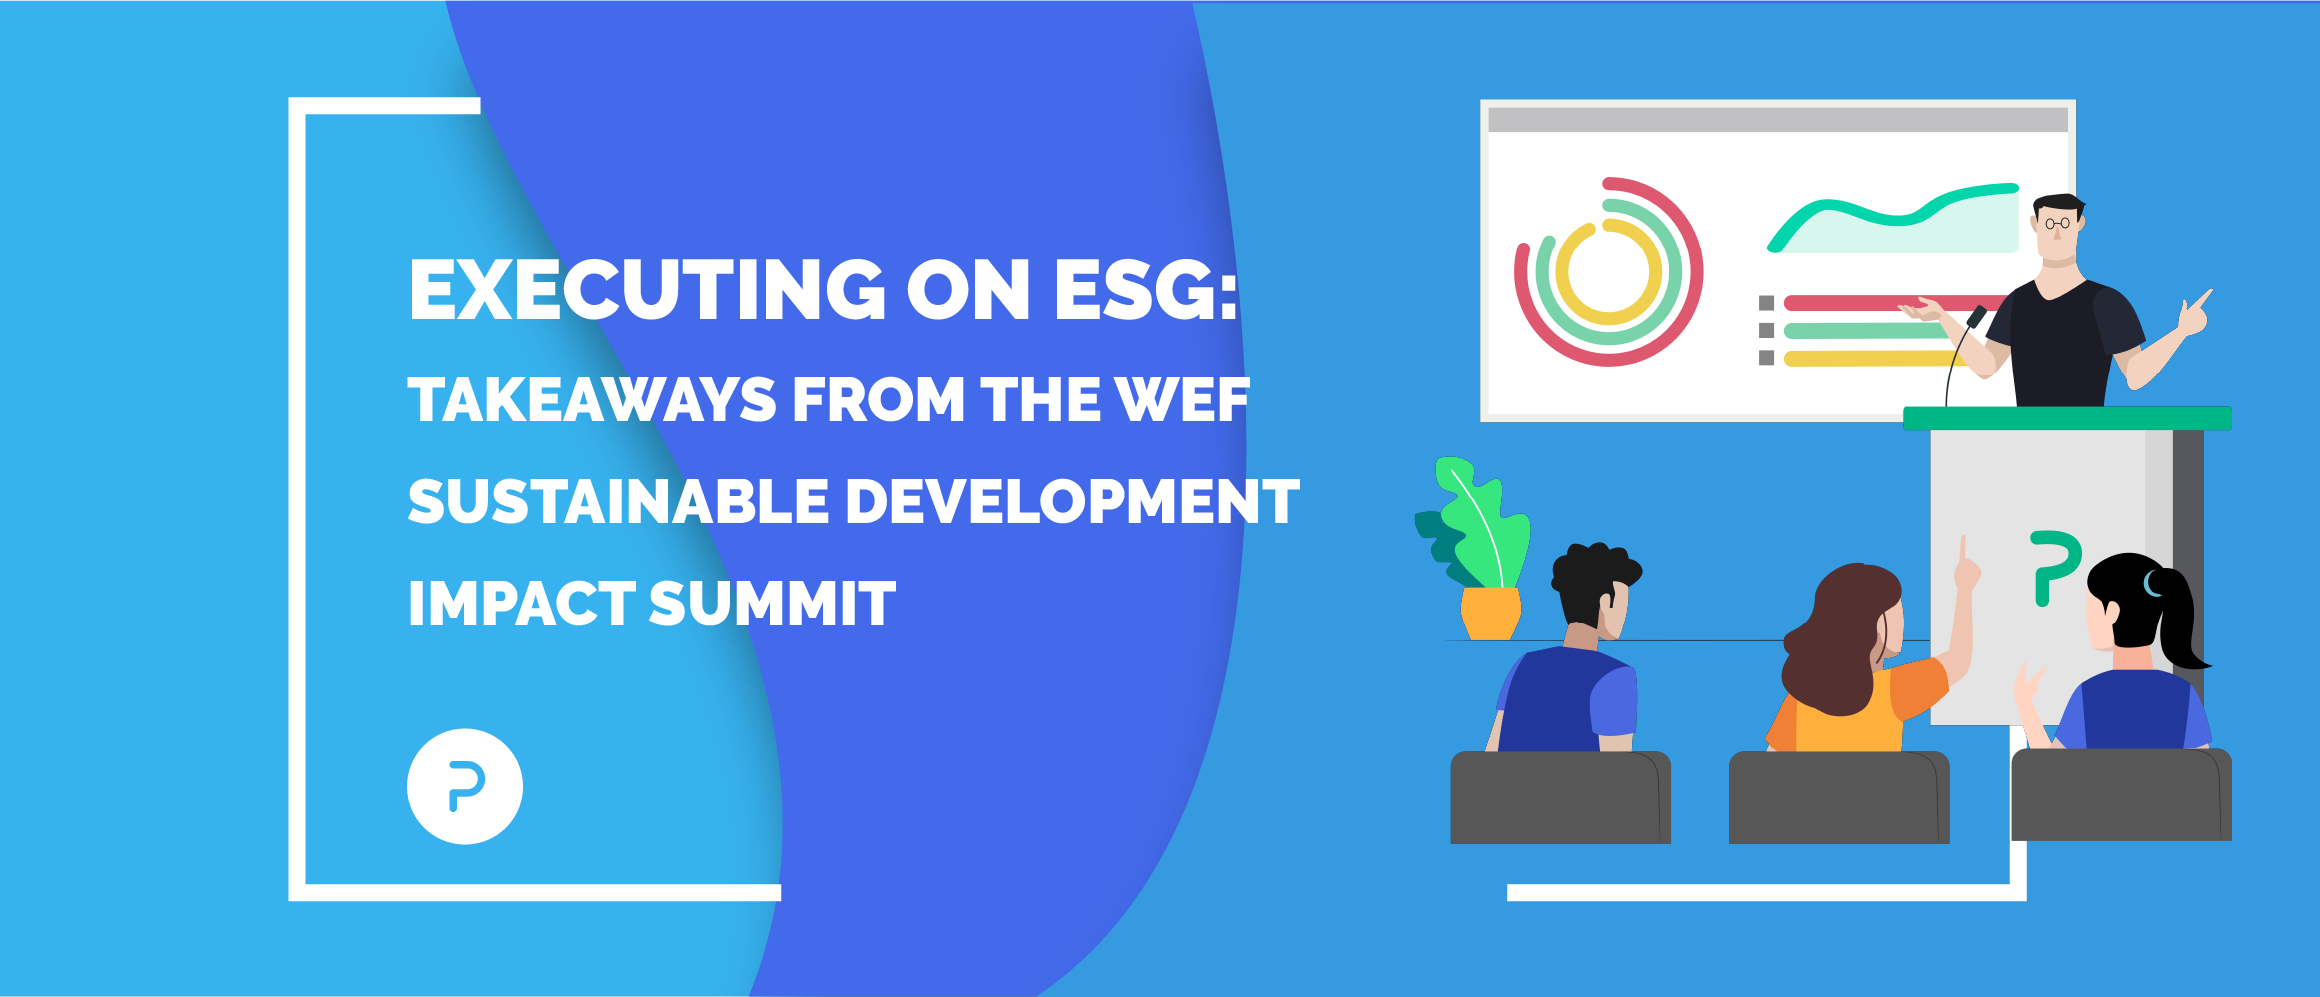 Executing on ESG: Takeaways from the WEF Sustainable Development Impact Summit